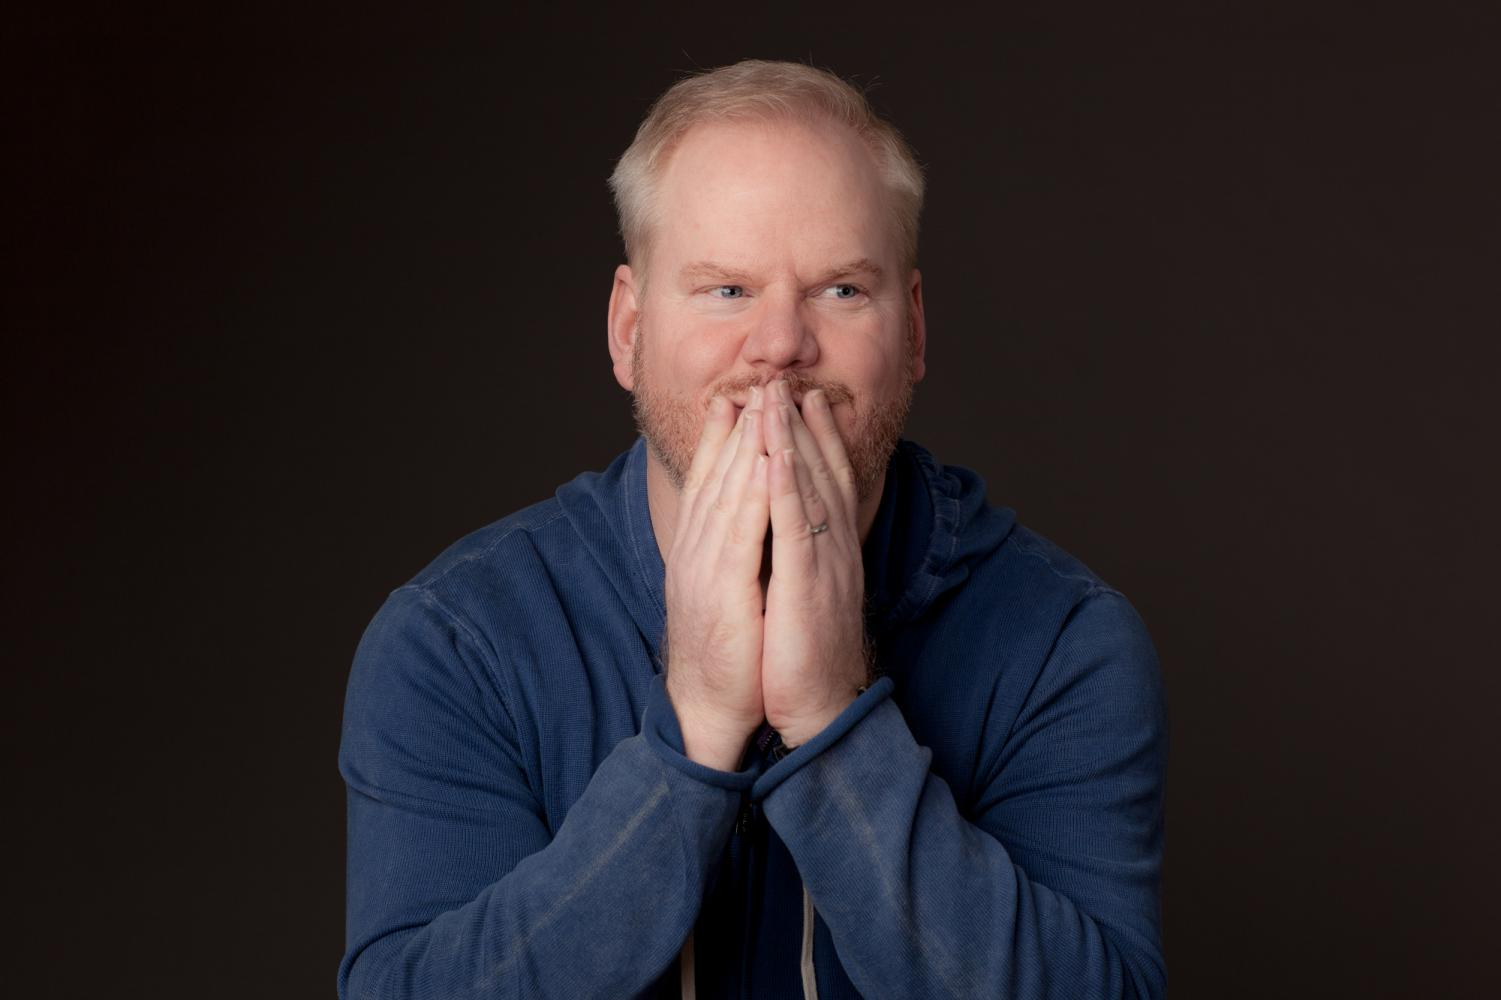 """Comedian Jim Gaffigan will perform for Mom's Weekend this year at Beasley Coliseum on Saturday as a part of his """"Quality Time"""" tour.  He was supposed to perform at another Mom's Weekend several years ago but had to cancel due to the premiere of his TV show."""